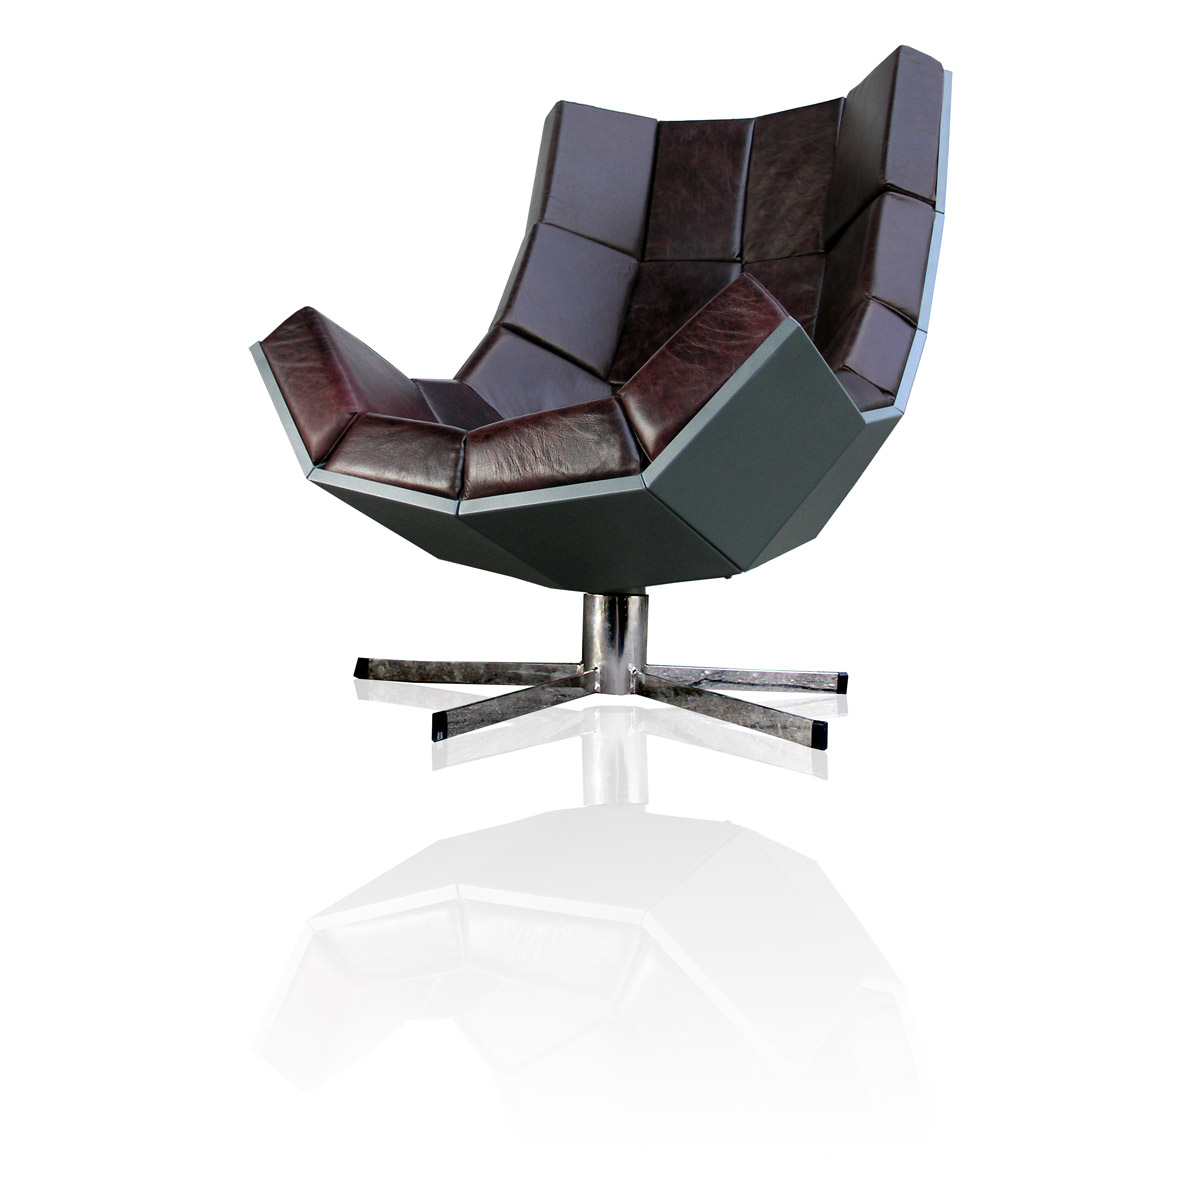 The Villain Chair The Ultimate In Evil Luxury Seating The Green Head